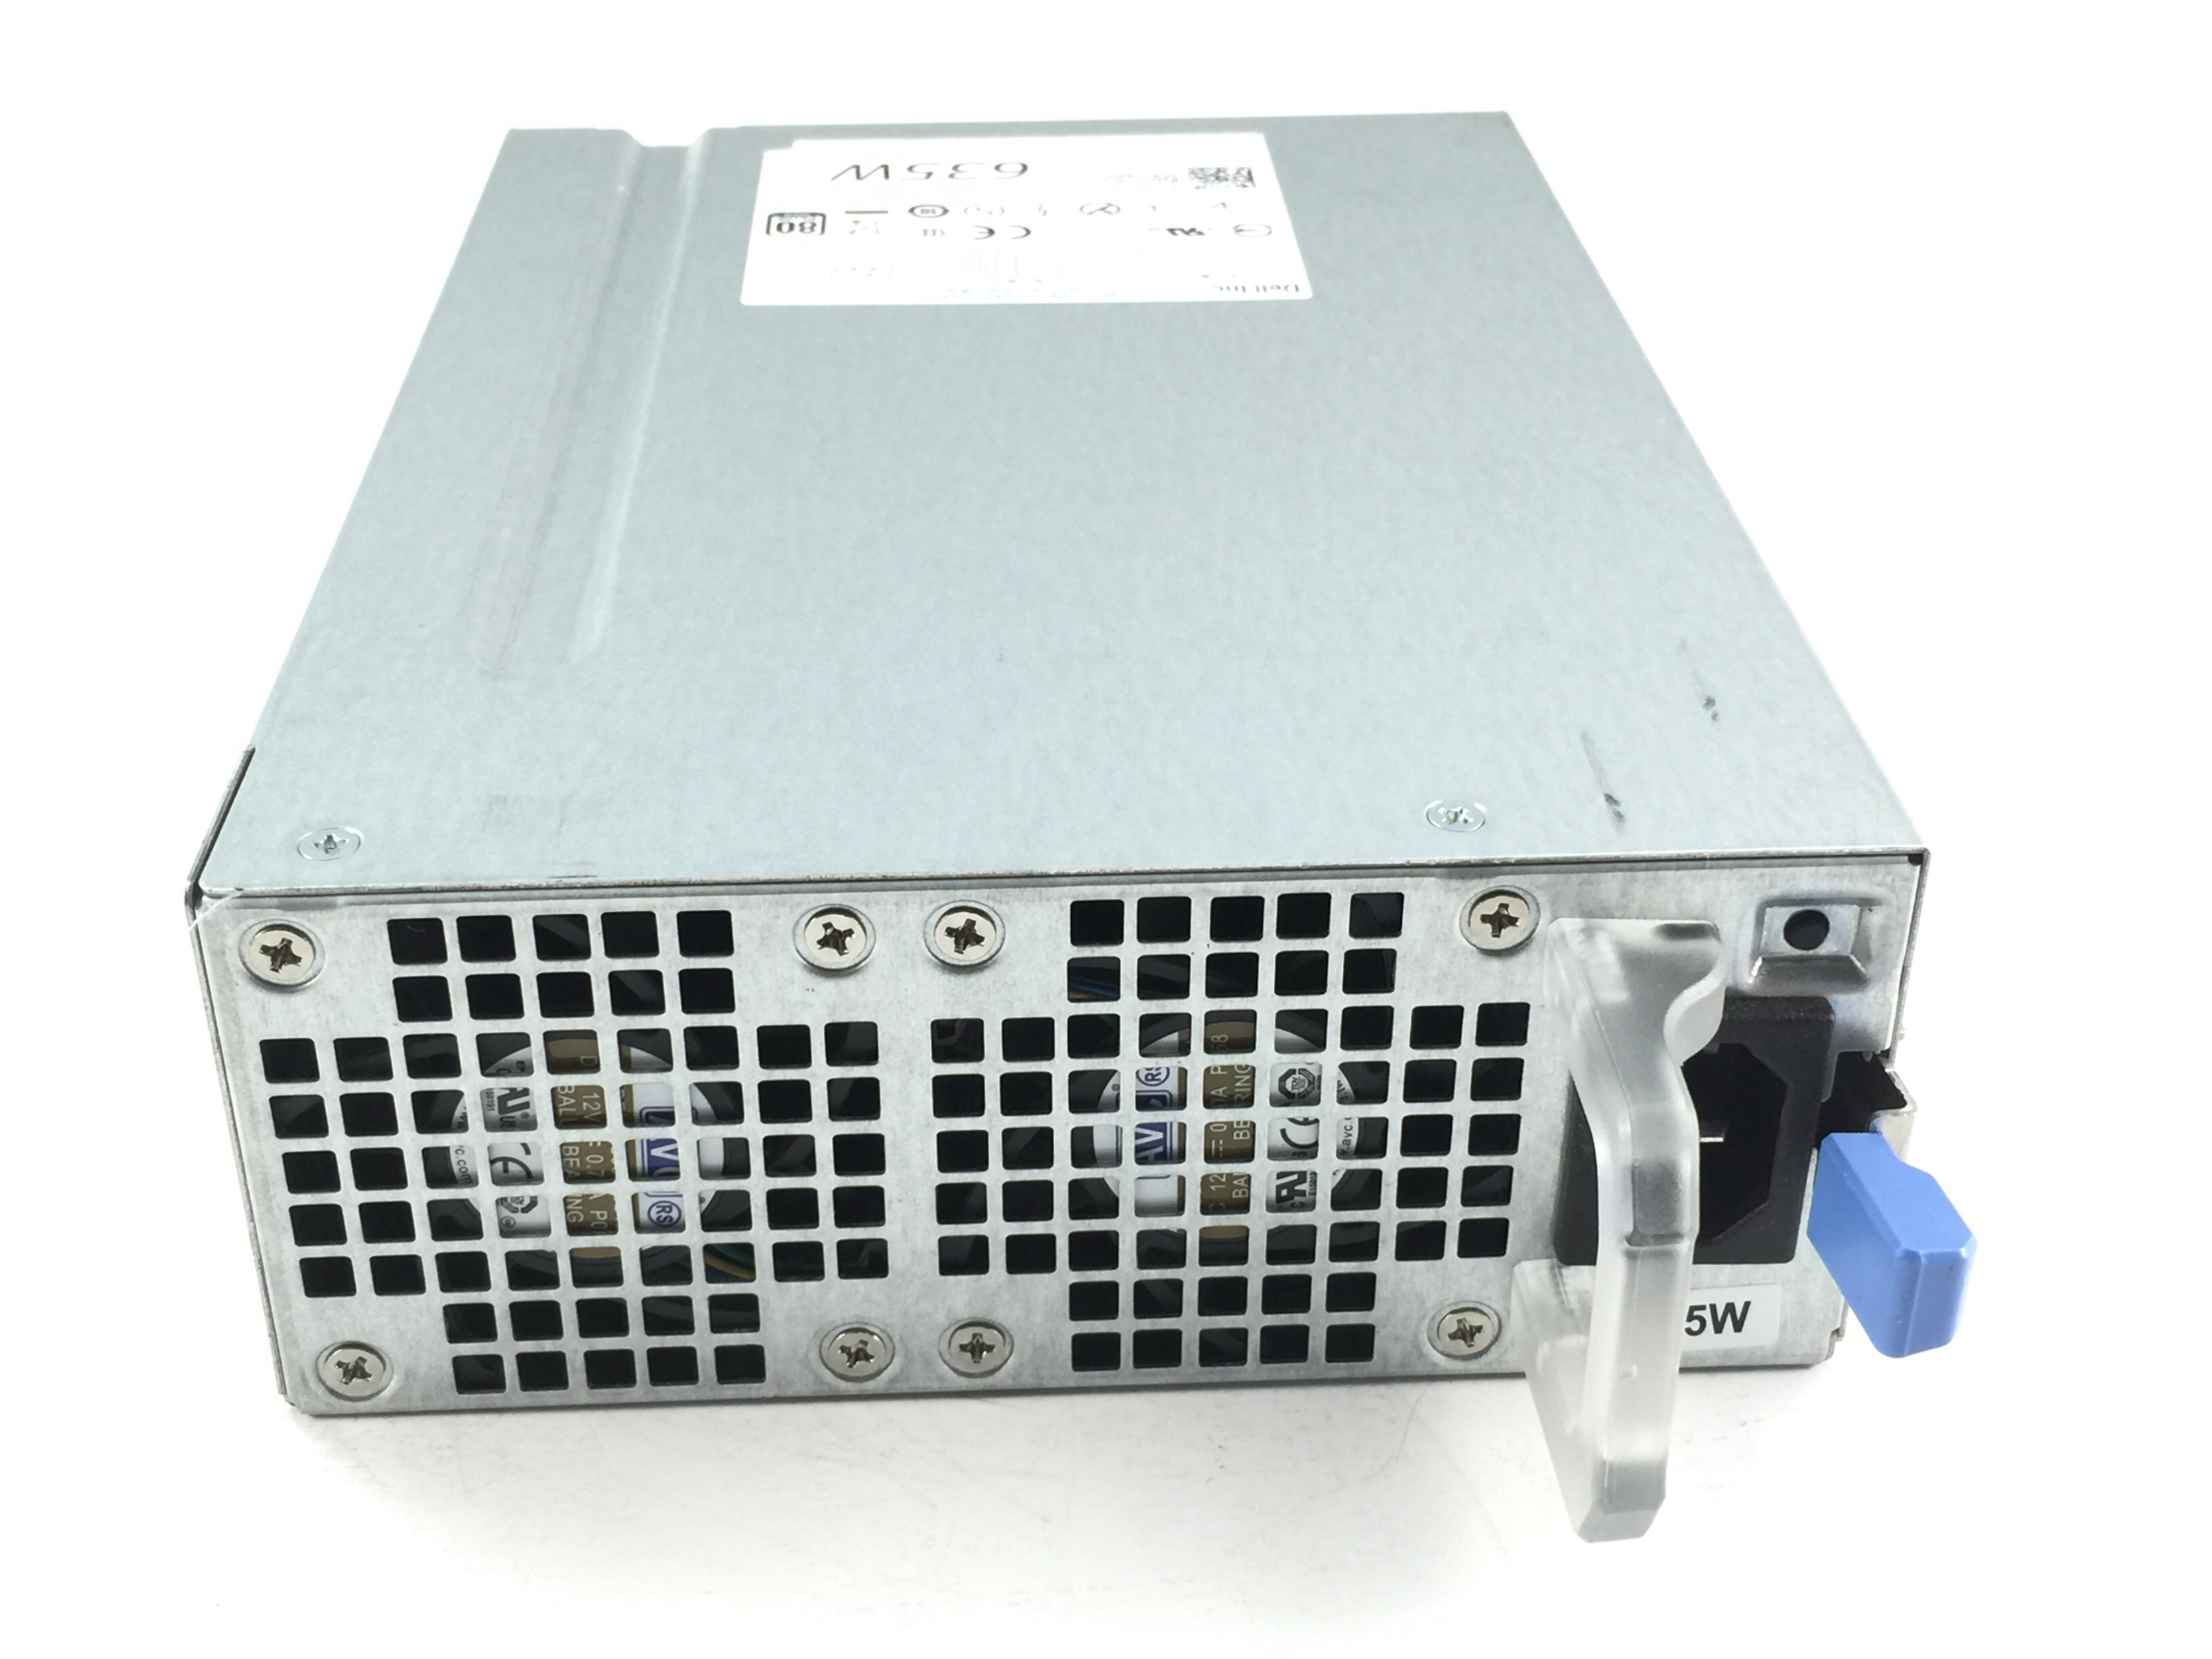 Dell Precision T3600 T5600 635W Power Supply (1K45H)